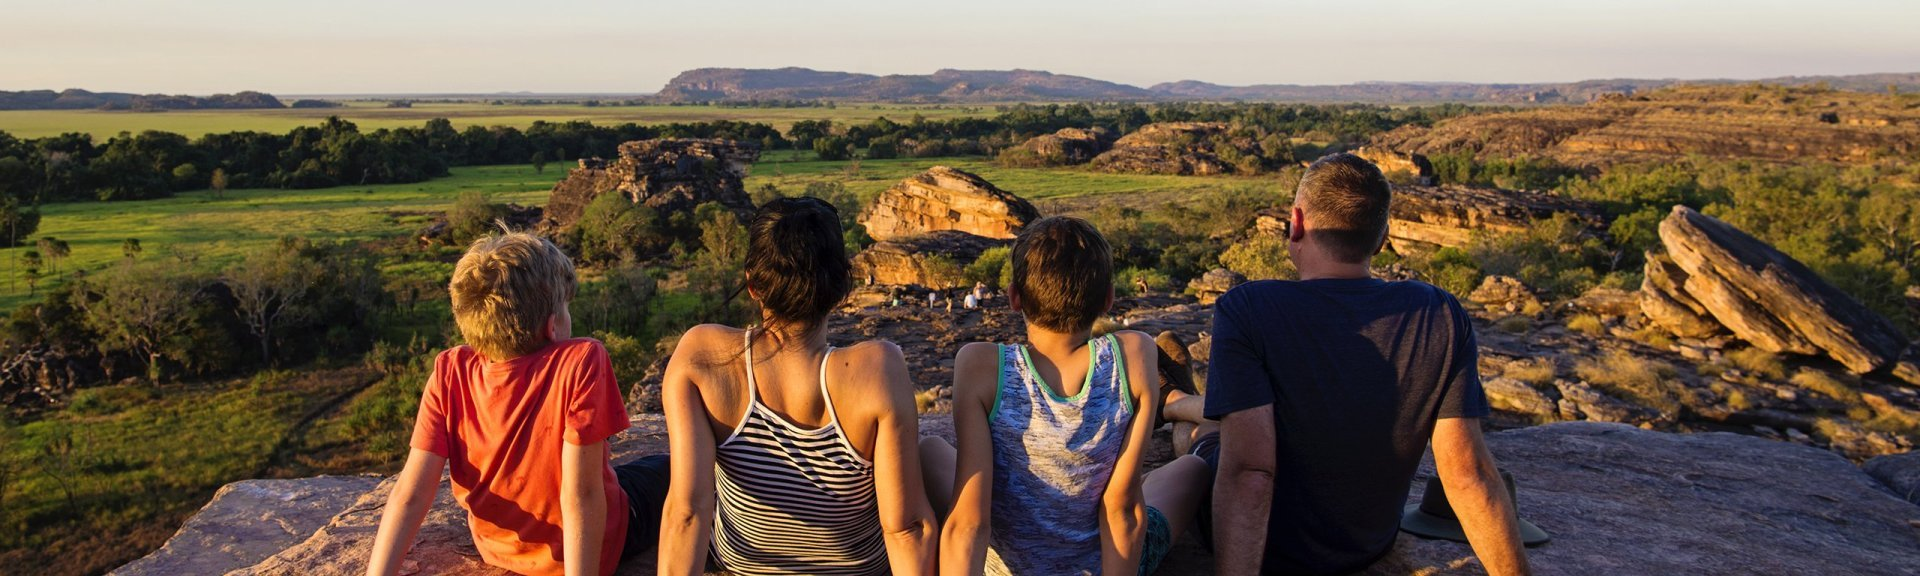 What is Kakadu national park famous for?